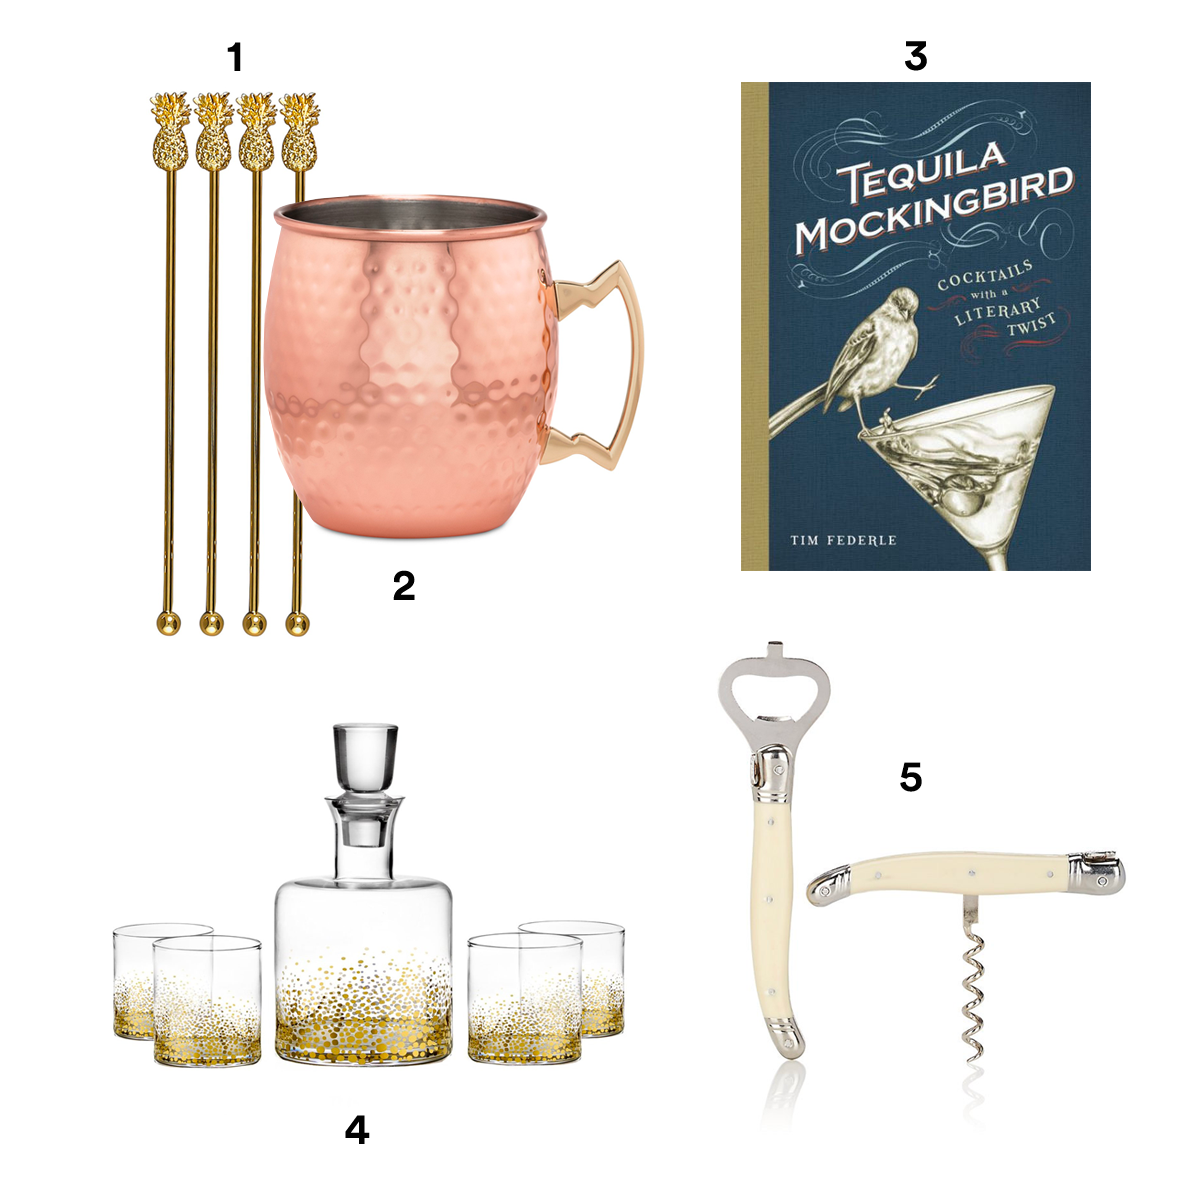 """1) THIRSTYSTONE Pineapple Swizzle Sticks, available at Macy's. 2) THIRSTYSTONE Hammered Copper Moscow Mule Mug, available at Macy's. 3) TIM FEDERLE Tequila Mockingbird: Cocktails with a Literary Twist, available at Barnes & Noble. 4) AMERICAN ATELIER """"Daphne"""" Decanter & Whiskey Glass, available at Nordstrom. 5) LAGUIOLE Corkscrew & Bottle Opener Set, available at Barneys New York."""